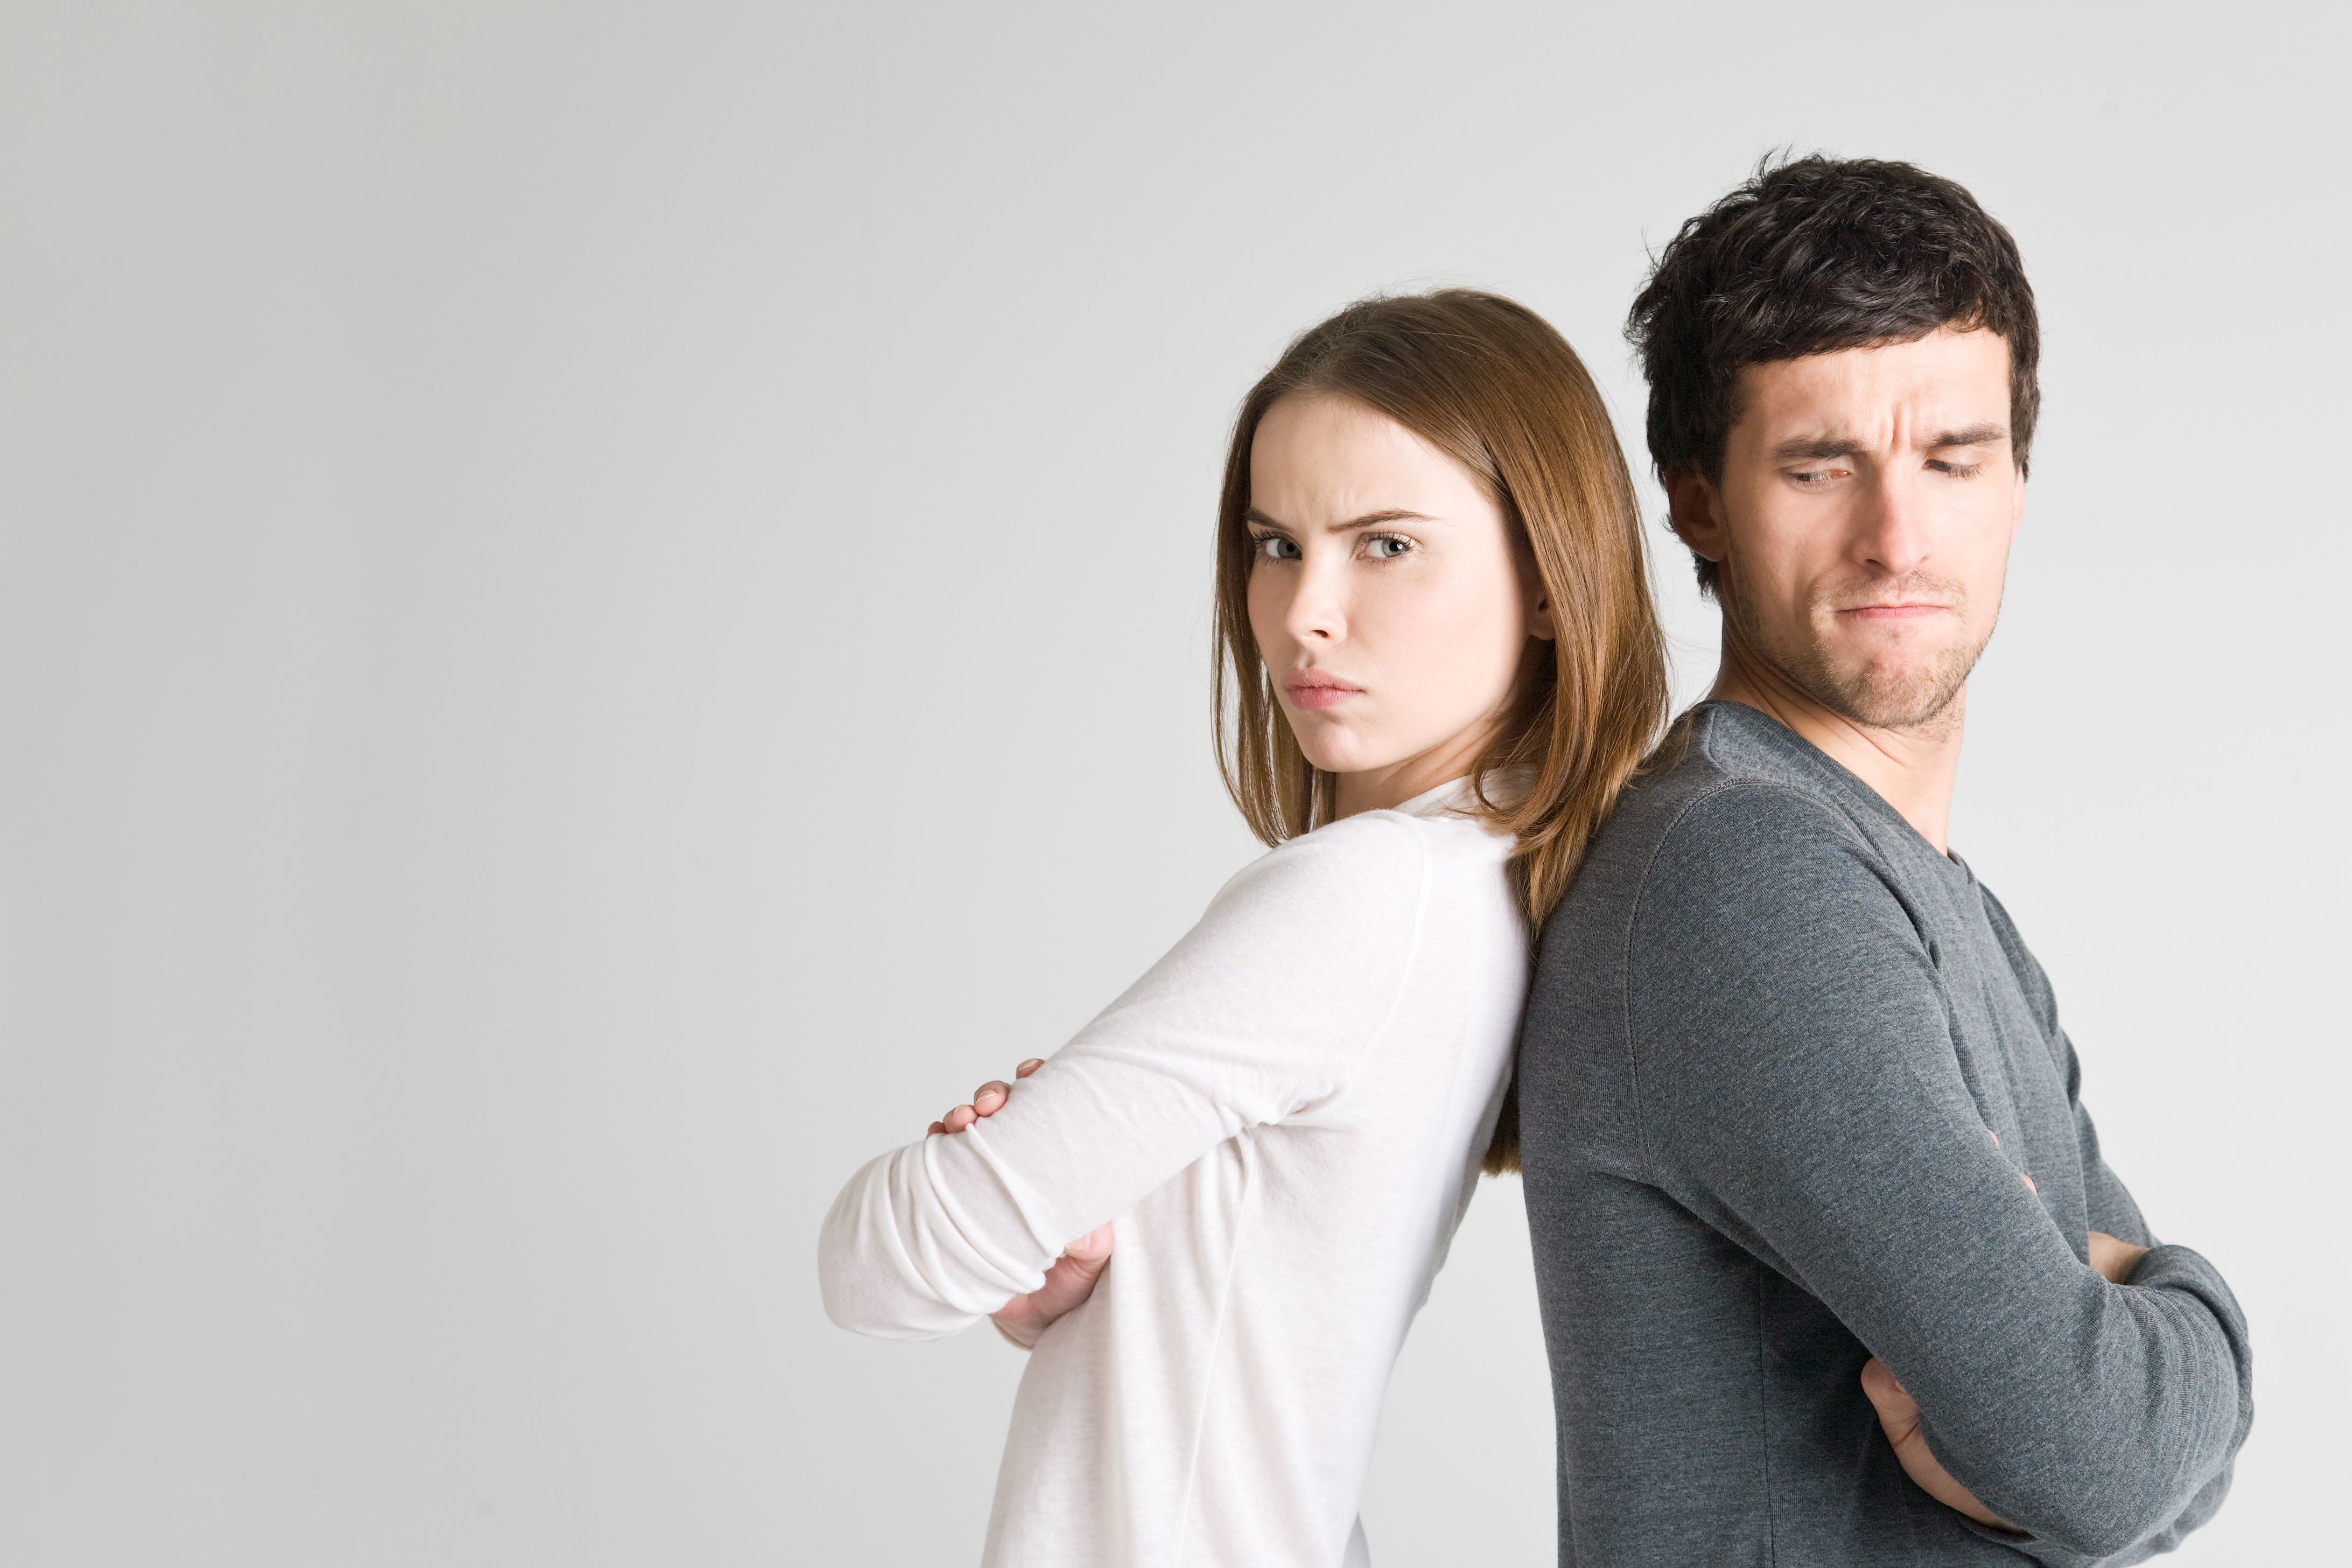 Couple in disagreement and conflict